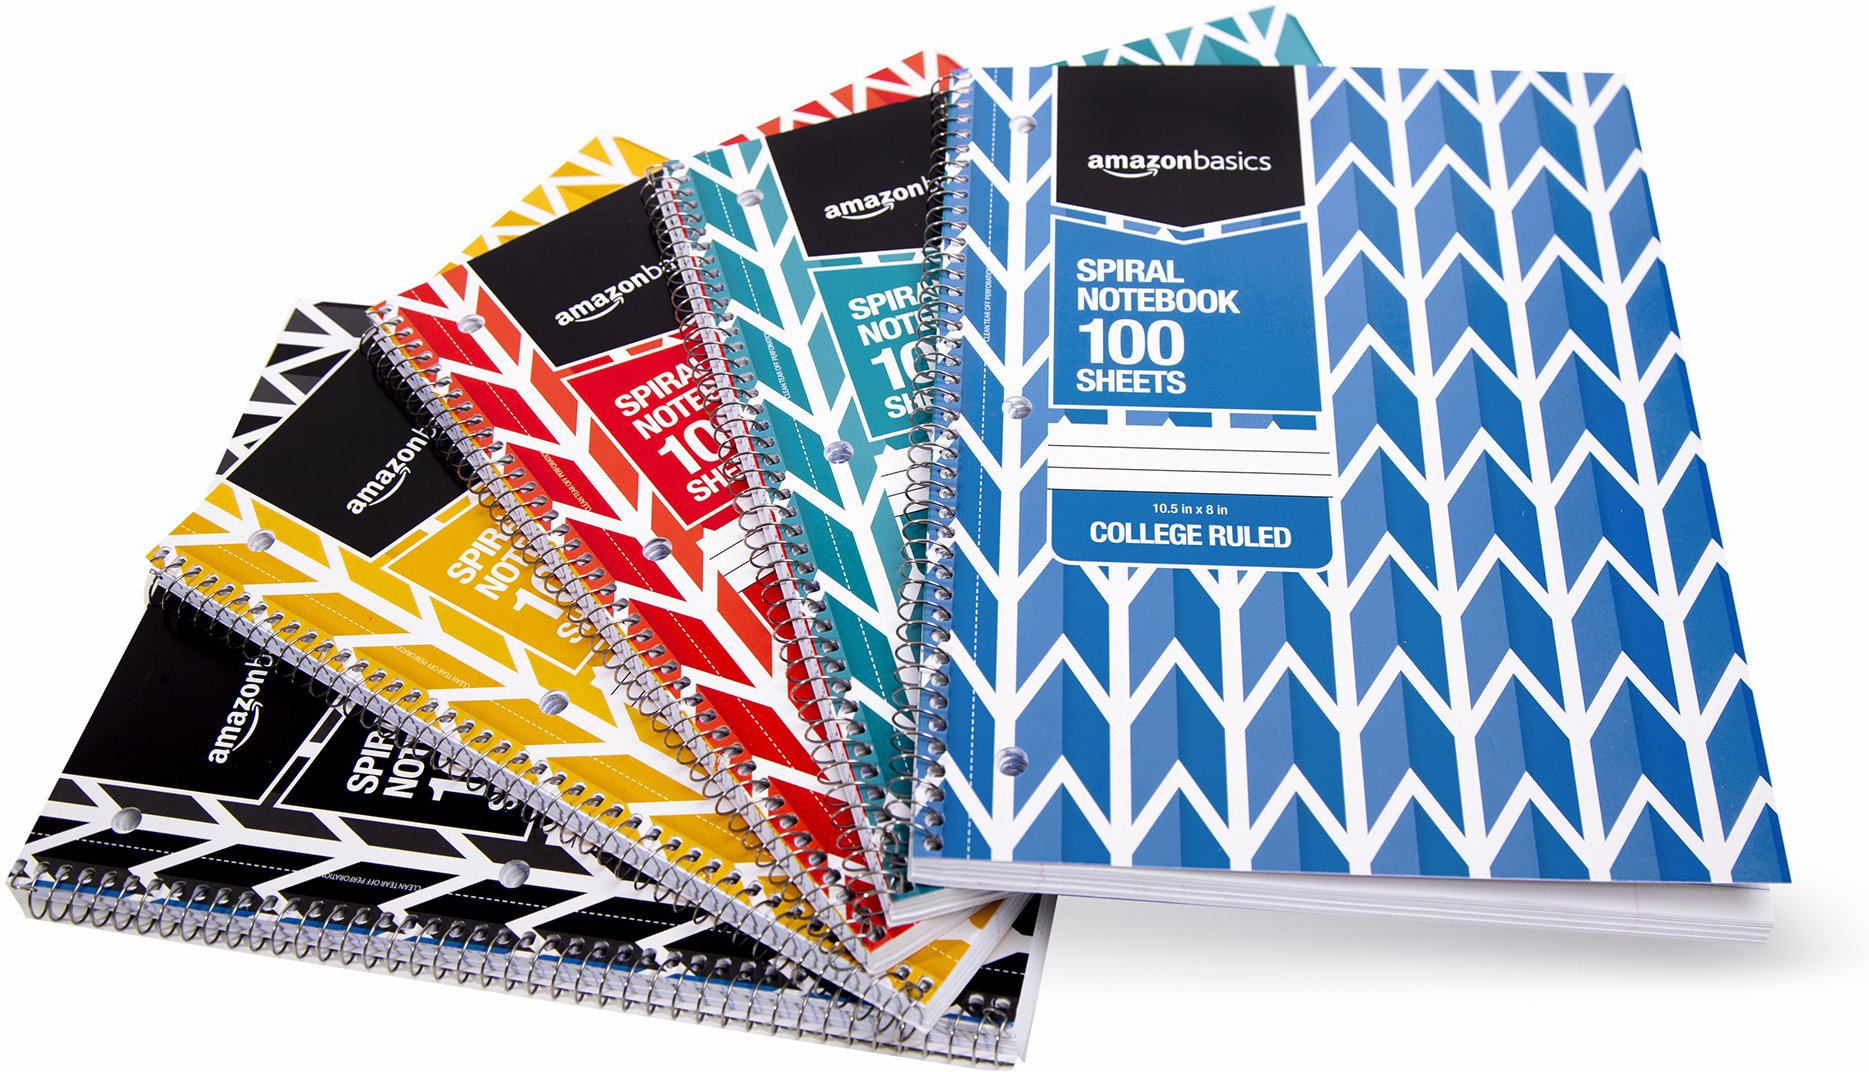 AmazonBasics College Ruled Wirebound Spiral Notebook, 100 Sheet, Assorted Lattice Pattern Colors, 25-Pack